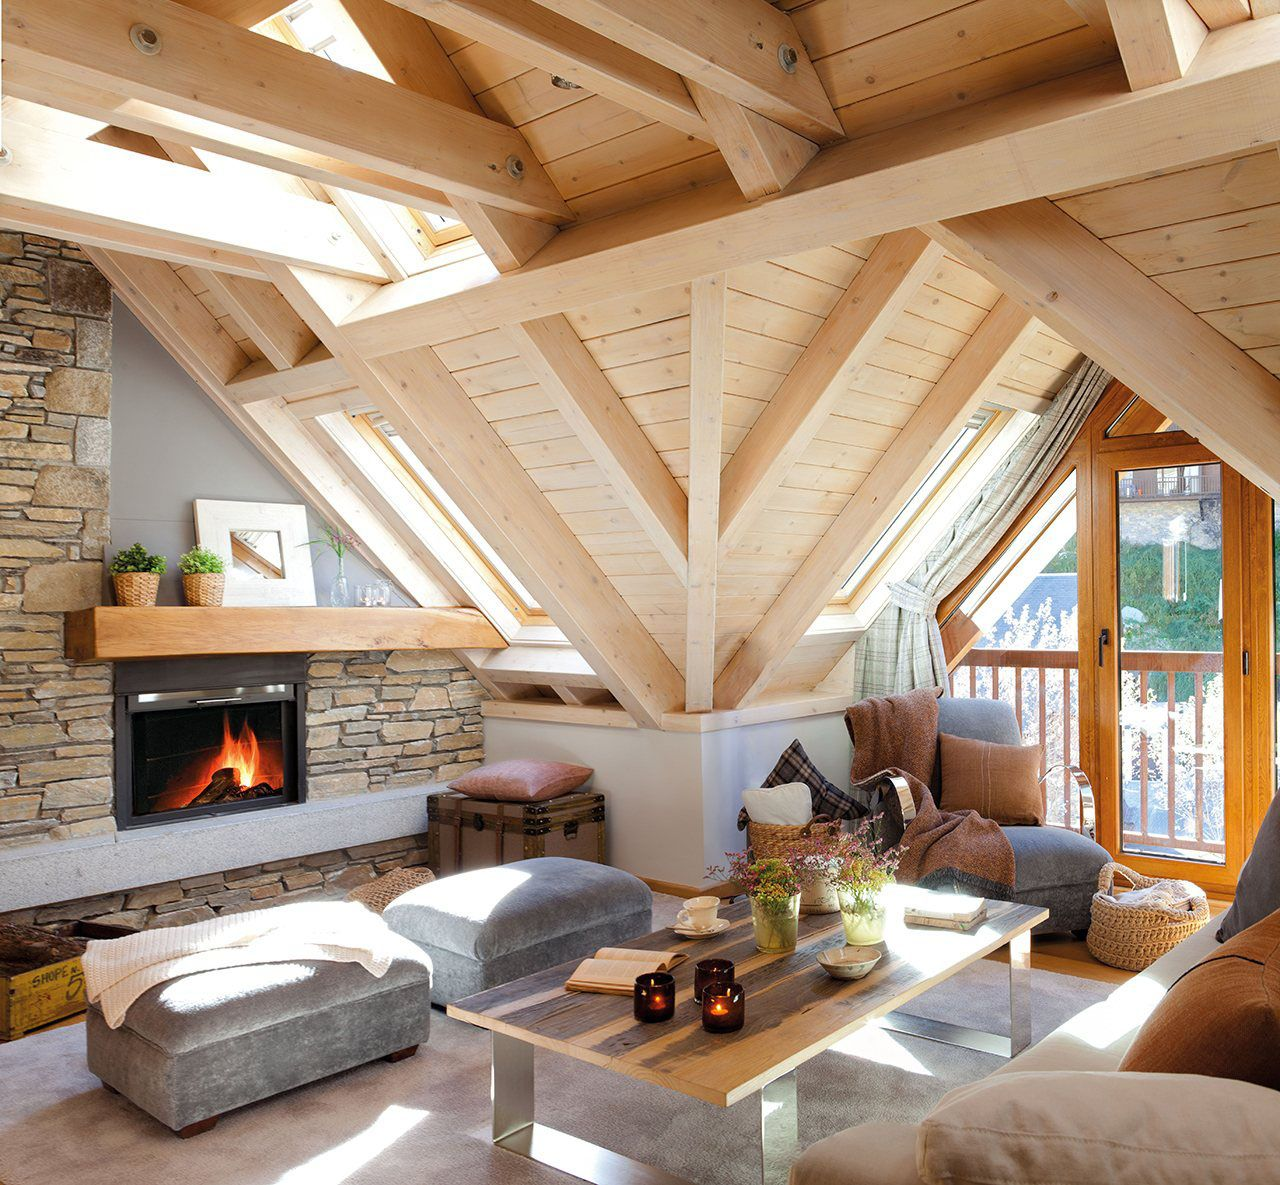 35 Cozy Home Interior Design Ideas: Cozy Rustic Mountain Retreat With A Contemporary Twist